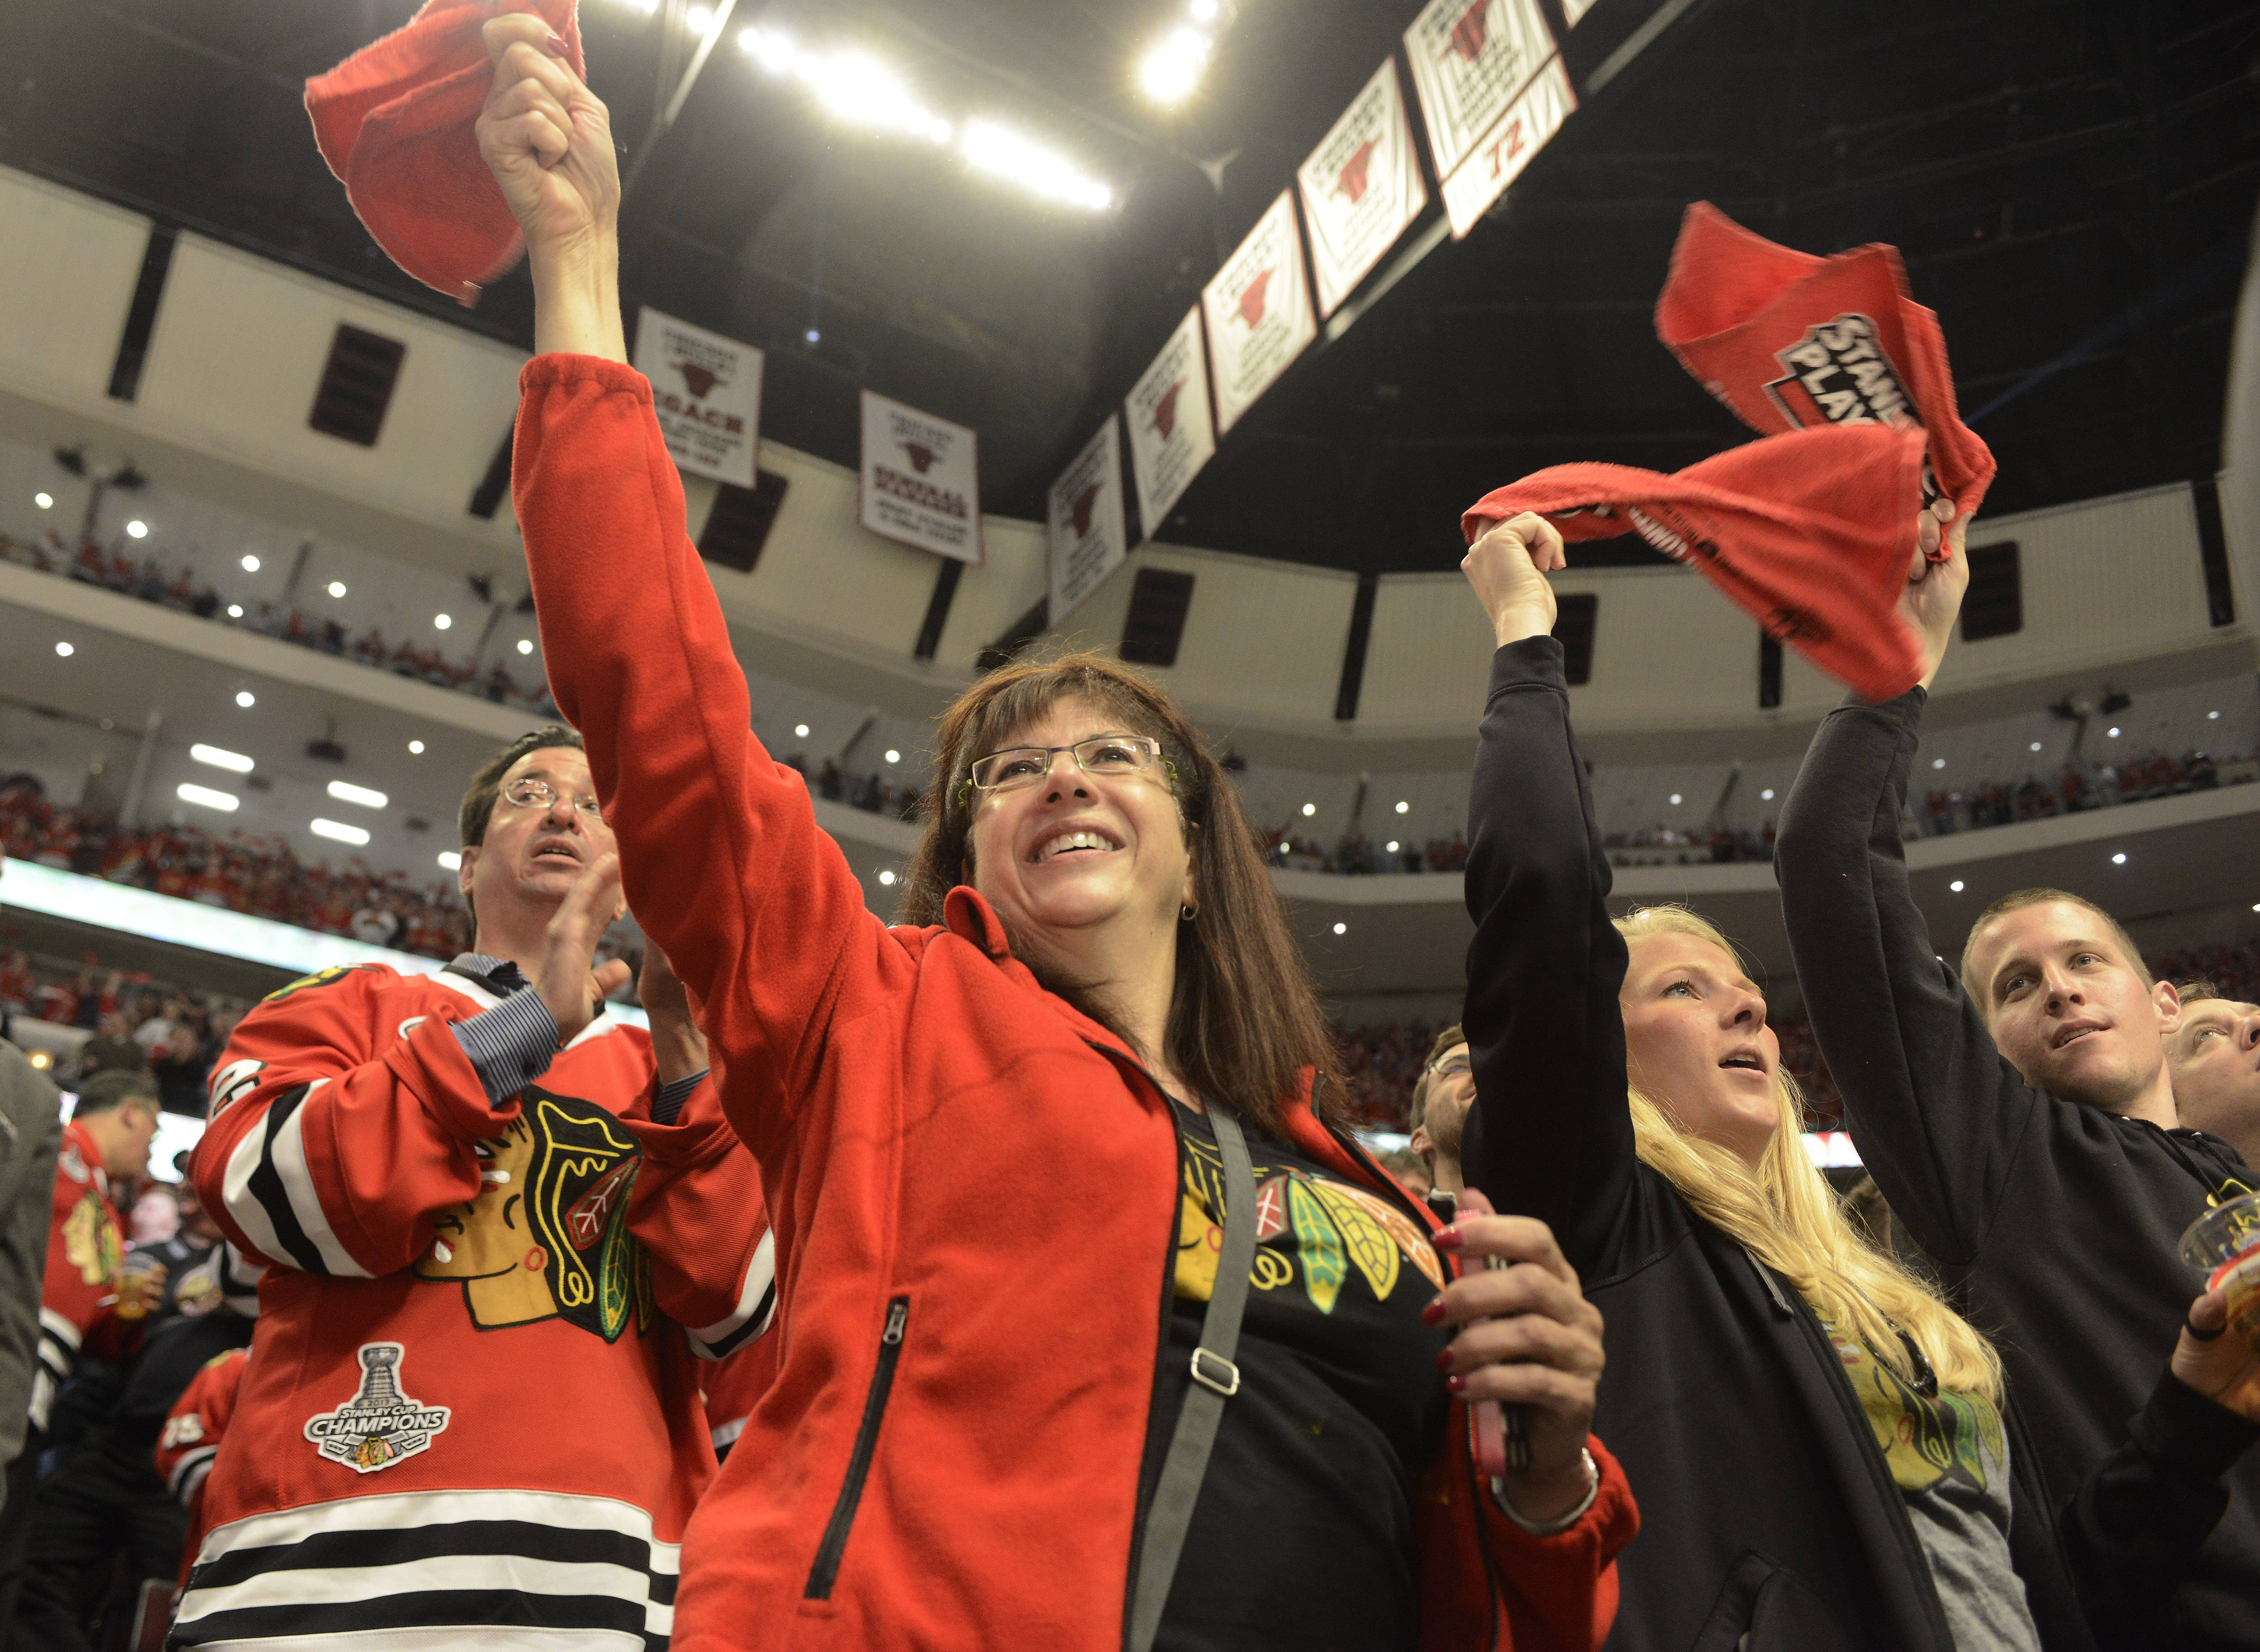 With their team ahead 1-0 over the Los Angeles Kings fans celebrate at the end of the first period during Sunday's game against the Los Angeles Kings at the United Center in Chicago. The Blackhawks won the opening game of the Western Conference finals 3-1.